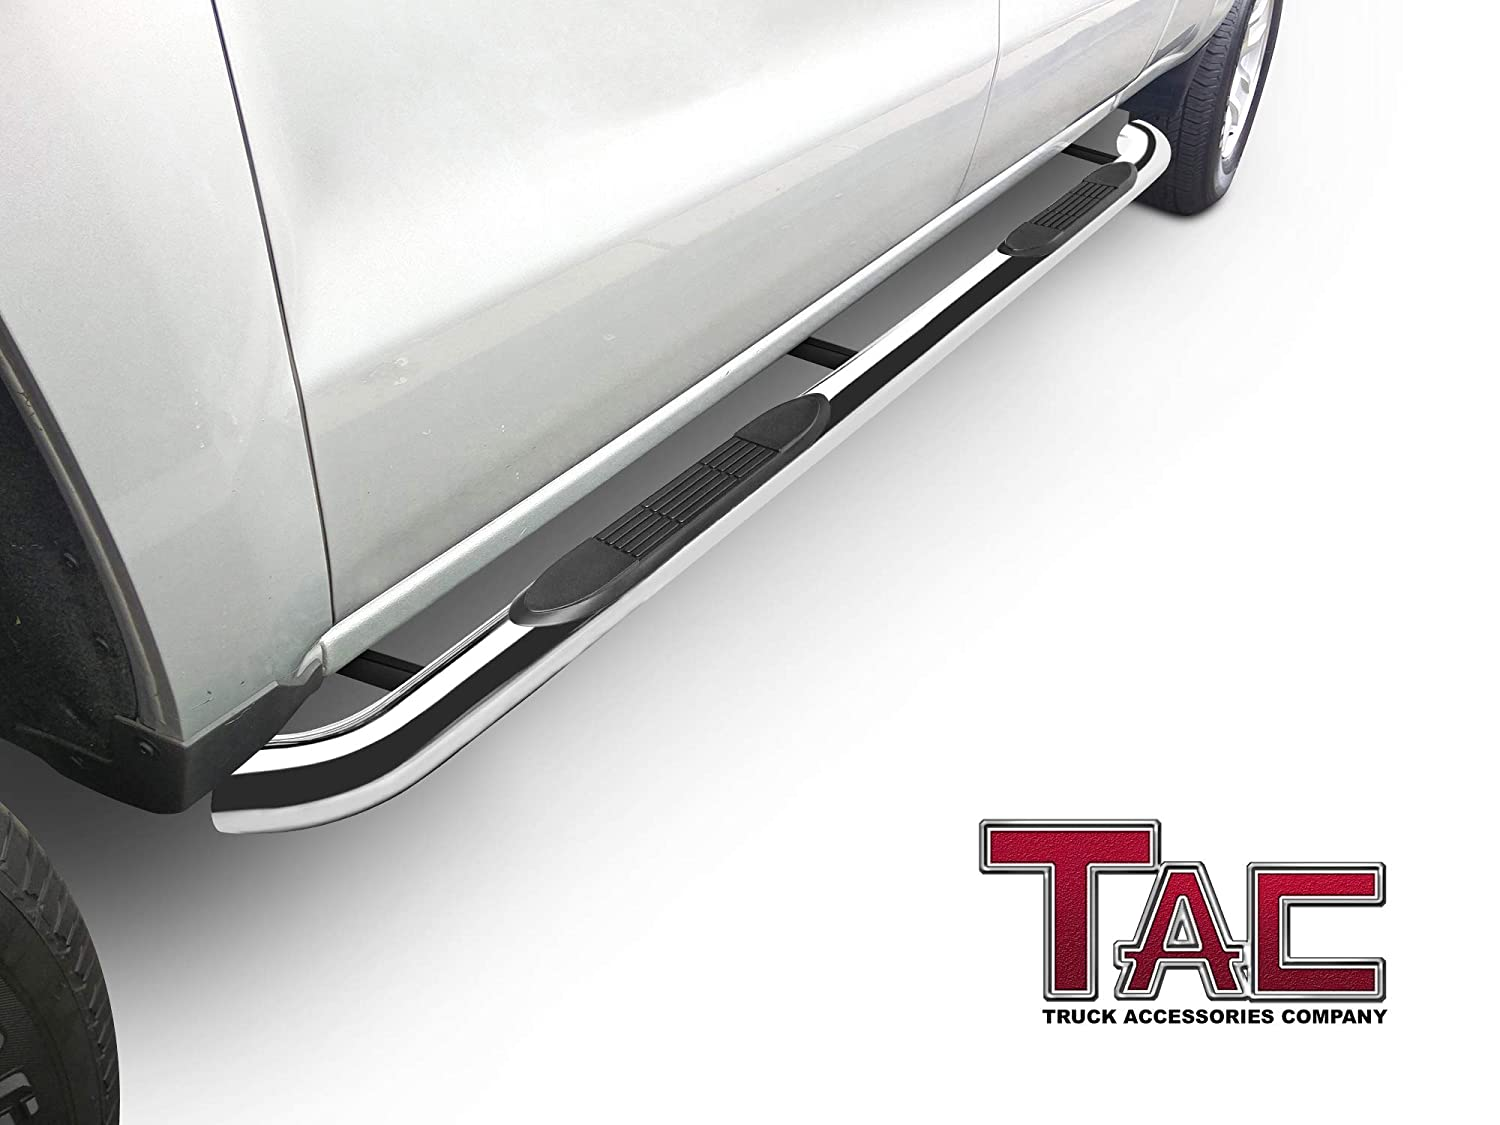 """Incl. High Altitude, High Altitude II and SRT TAC Side Steps Running Boards Fit 2011-2020 Jeep Grand Cherokee SUV 3/"""" Stainless Steel 304 Side Bars Nerf Bars Off Road Accessories 2 Pcs"""